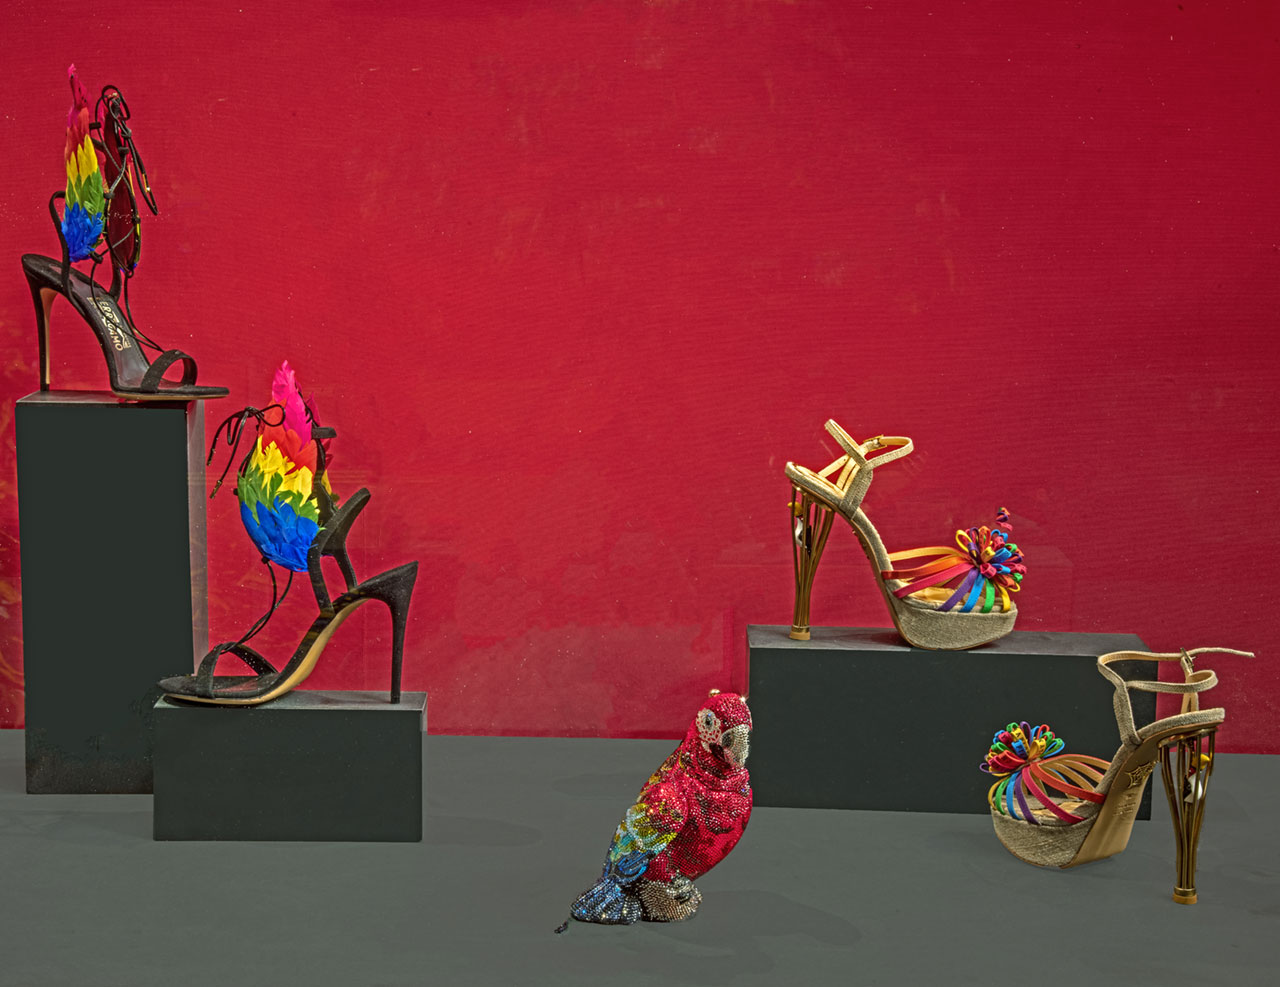 "Exhibition view (from left to right): Salvatore Ferragamo, Sandals. Capsule Collection by Edgardo Osorio, Spring / Summer 2016, Florence, Salvatore Ferragamo Museum. Judith Leiber Couture, ""Scarlet"" parrot clutch, 2018. Charlotte Olympia, ""Birds of Paradise"" sandals, Capsule Collection 2018. Photo © Antonio Quattrone."